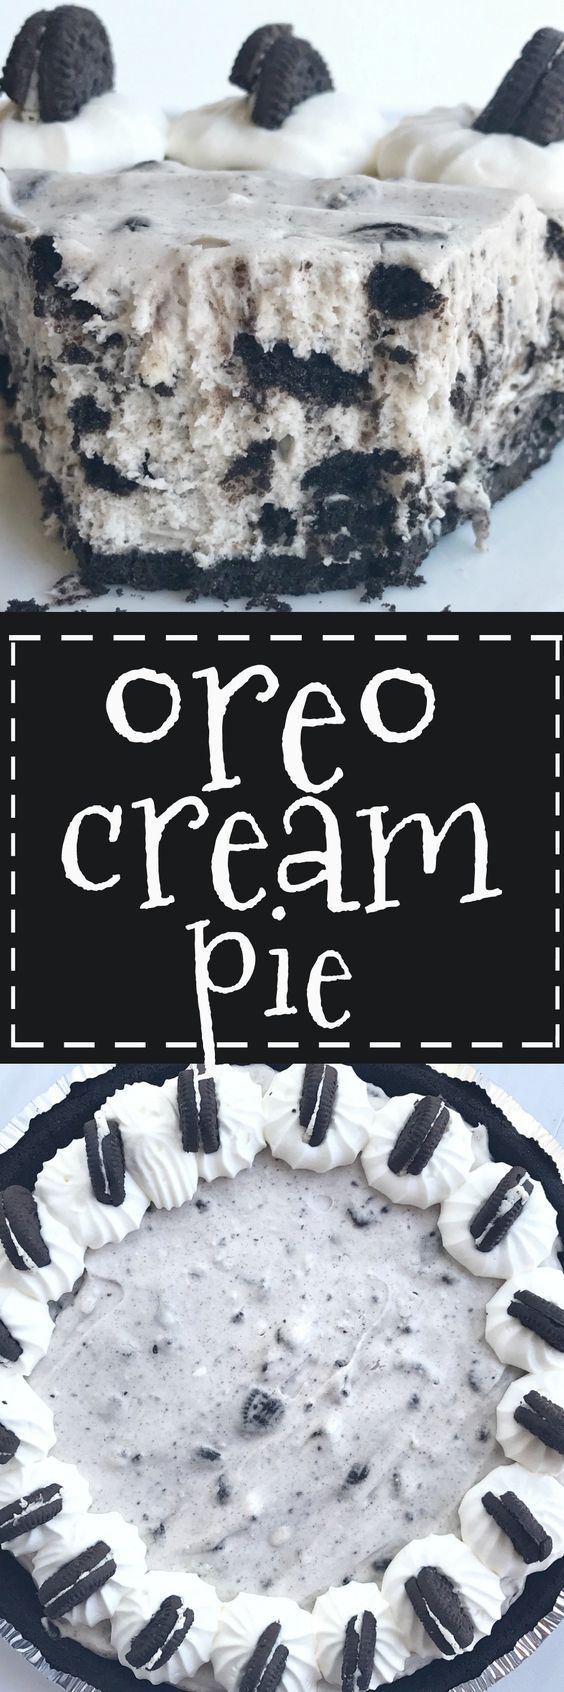 This Oreo cream pie will be one of the easiest desserts you'll ever make. An Oreo cookie crust filled with a cream Oreo filling. Top with additional whipped cream and Oreos for the ultimate Oreo Cream Pie. Only 6 simple ingredients needed and it's no-bake!